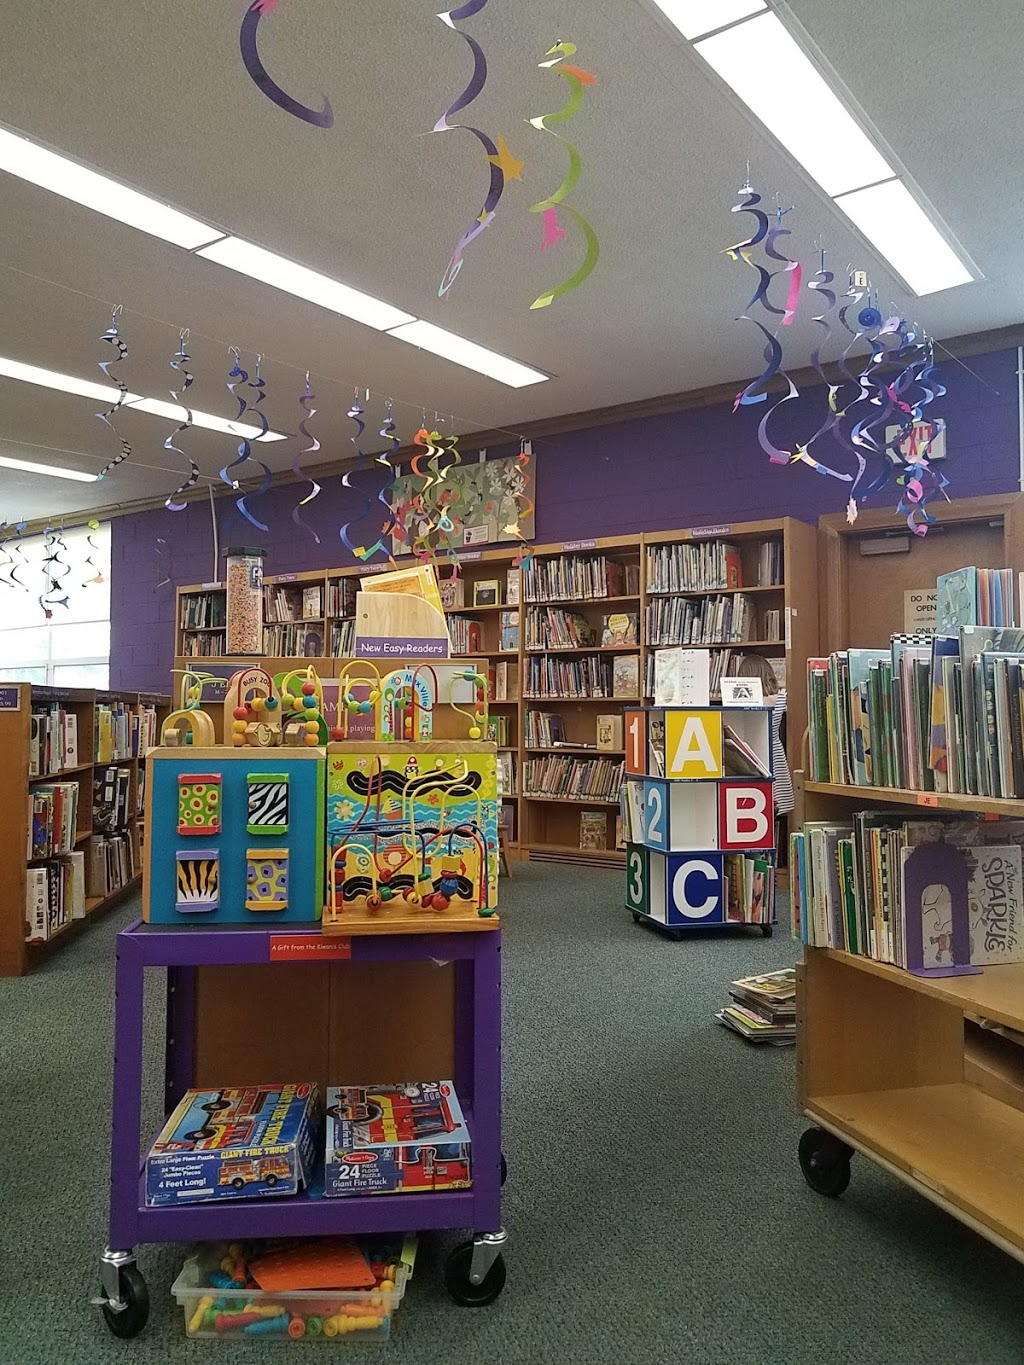 Maplewood Memorial Library - library  | Photo 8 of 10 | Address: 51 Baker St, Maplewood, NJ 07040, USA | Phone: (973) 762-1560